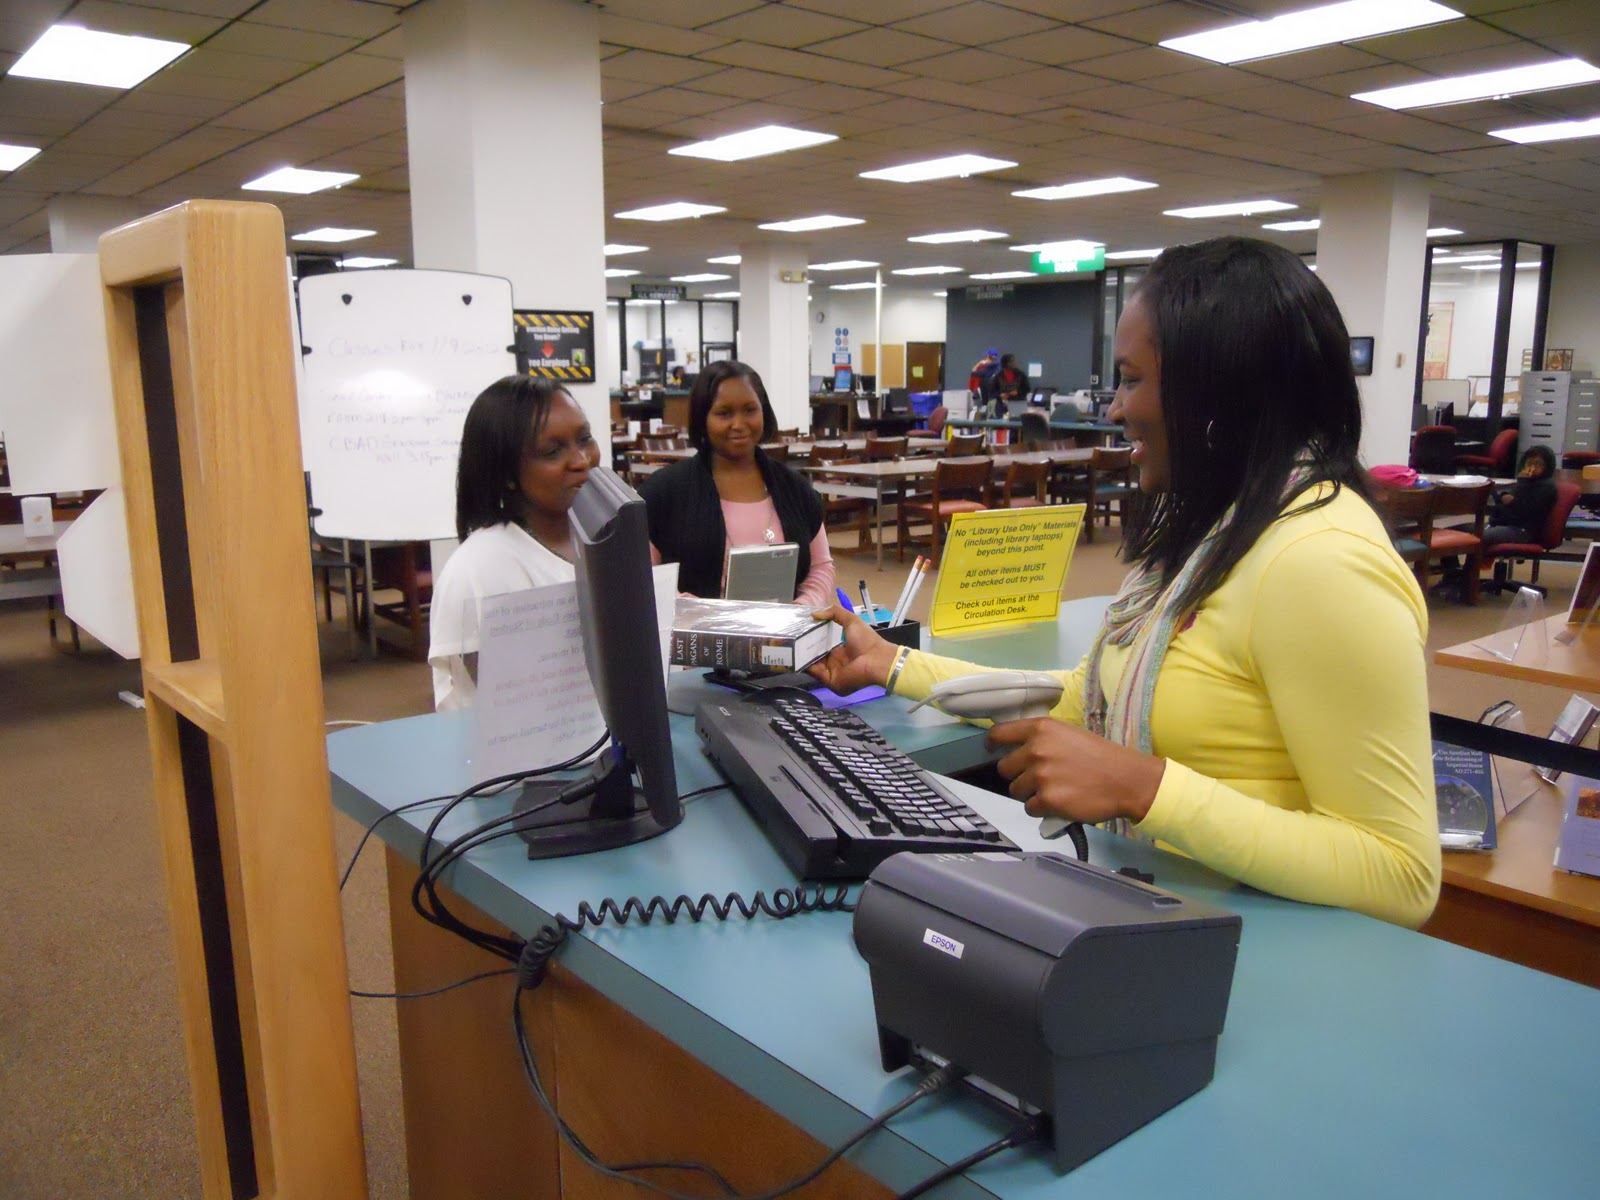 News From Kimbel Library Express Check Out At Kimbel Library Kimbel library is an academic library. news from kimbel library express check out at kimbel library